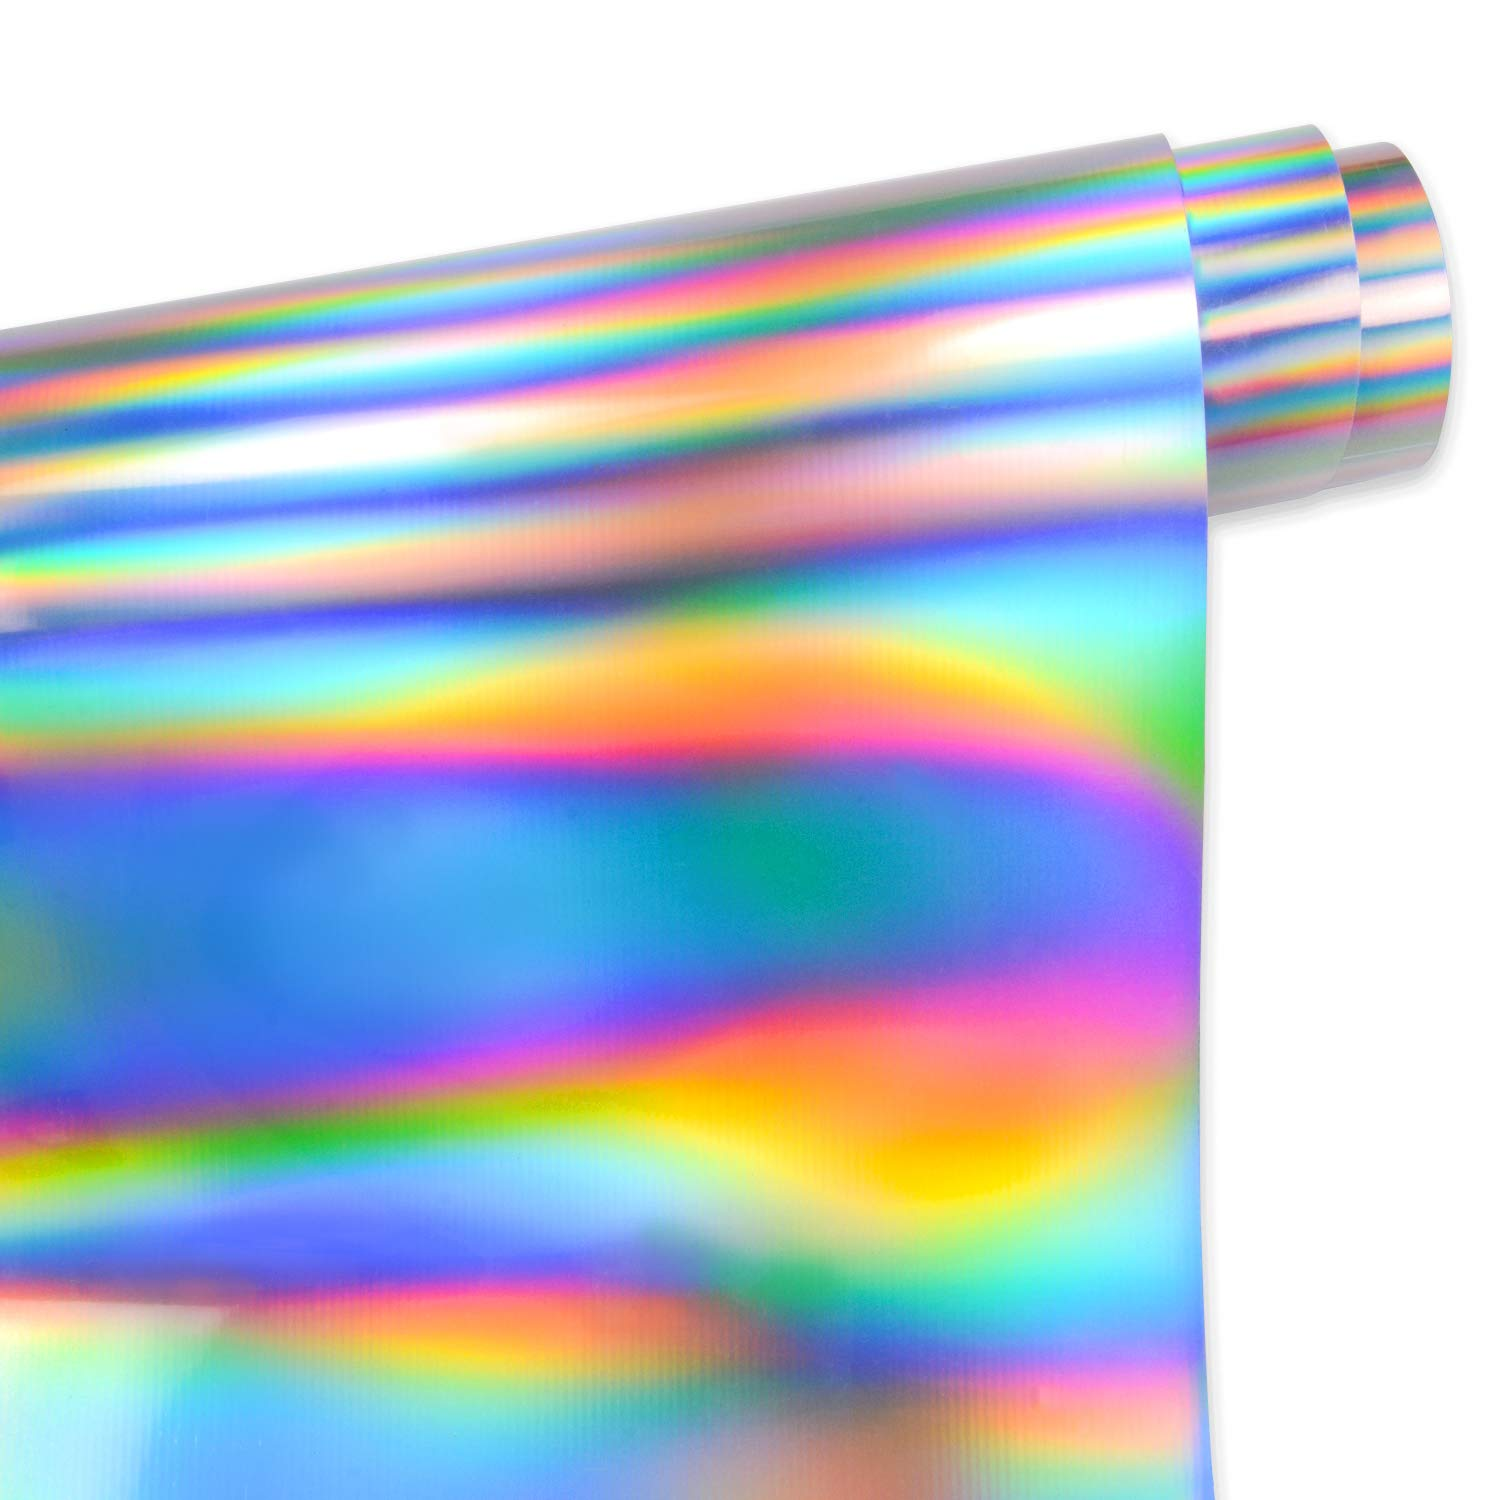 TECKWRAP Holographic Heat Transfer Rainbow Laser Iron on HTV Vinyl for T-Shirts,Party Clothing 29.5cm x50cm 2 Sheets/Bundle,Spectrum Silver